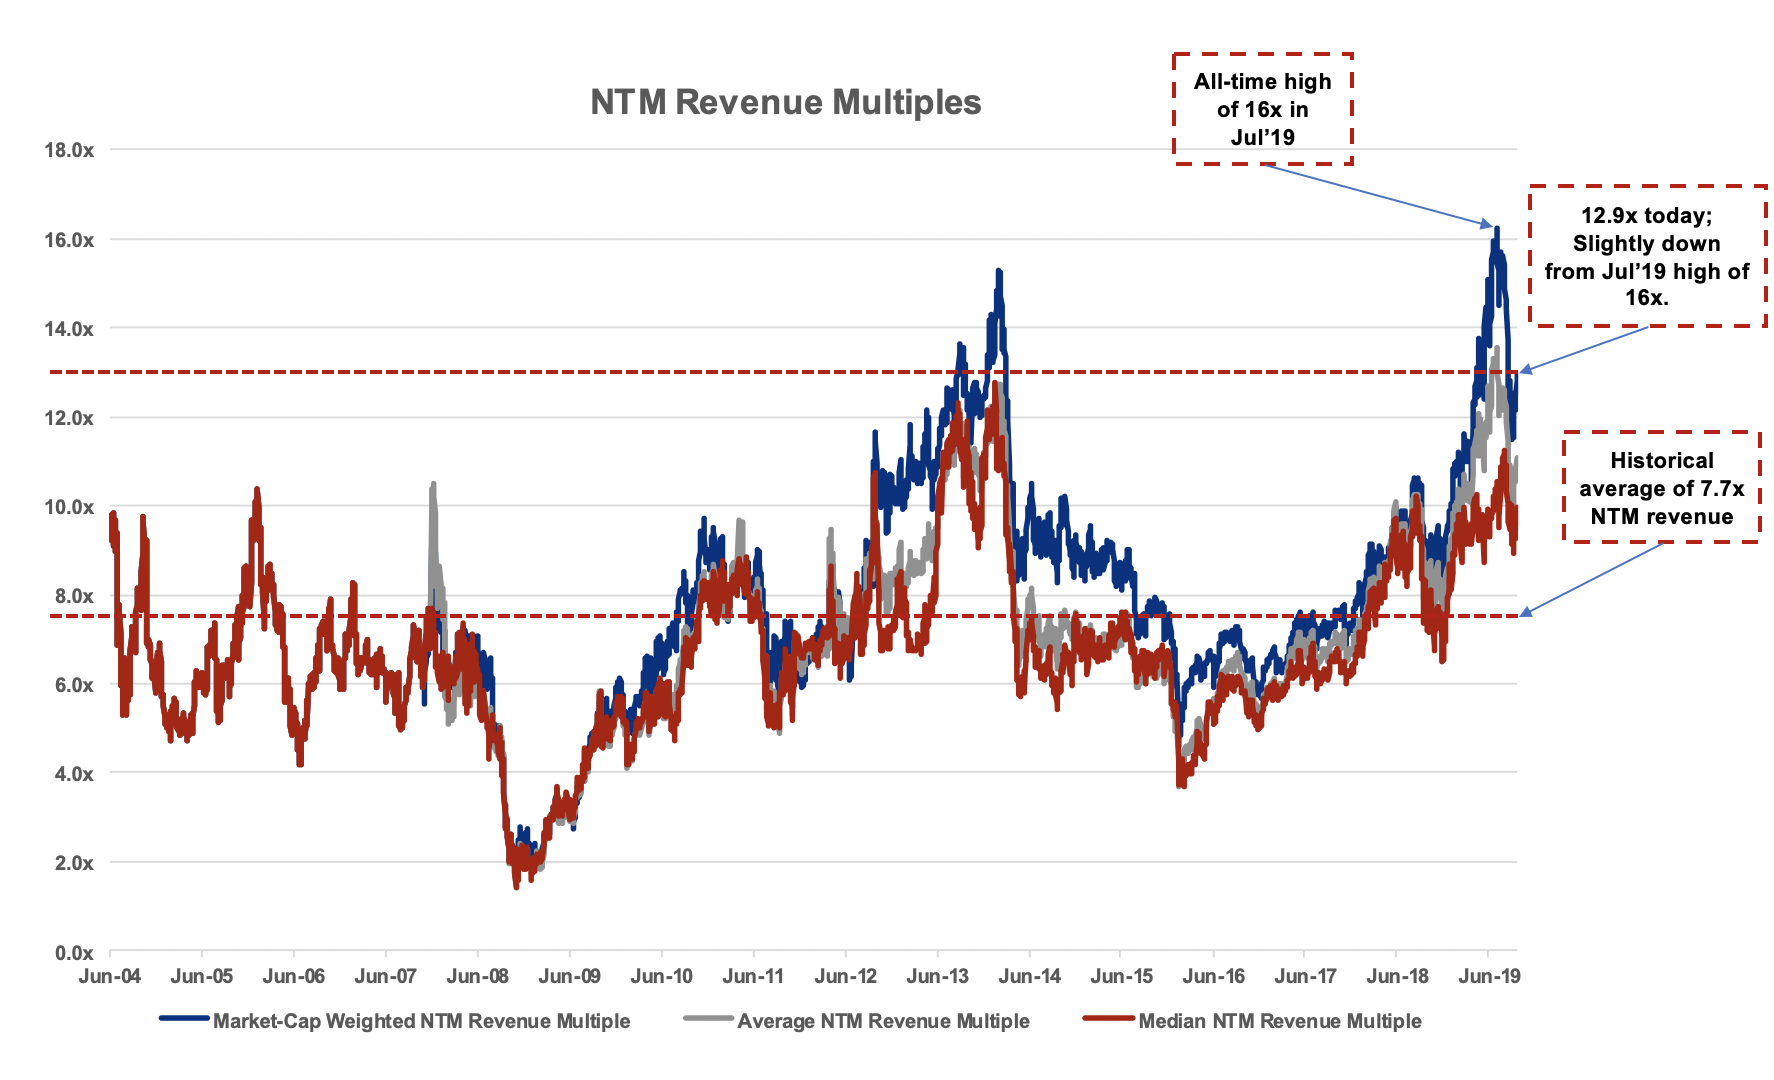 SaaS company valuations, metrics, and IPOs: An interview with Alex Clayton of Meritech Capital 3